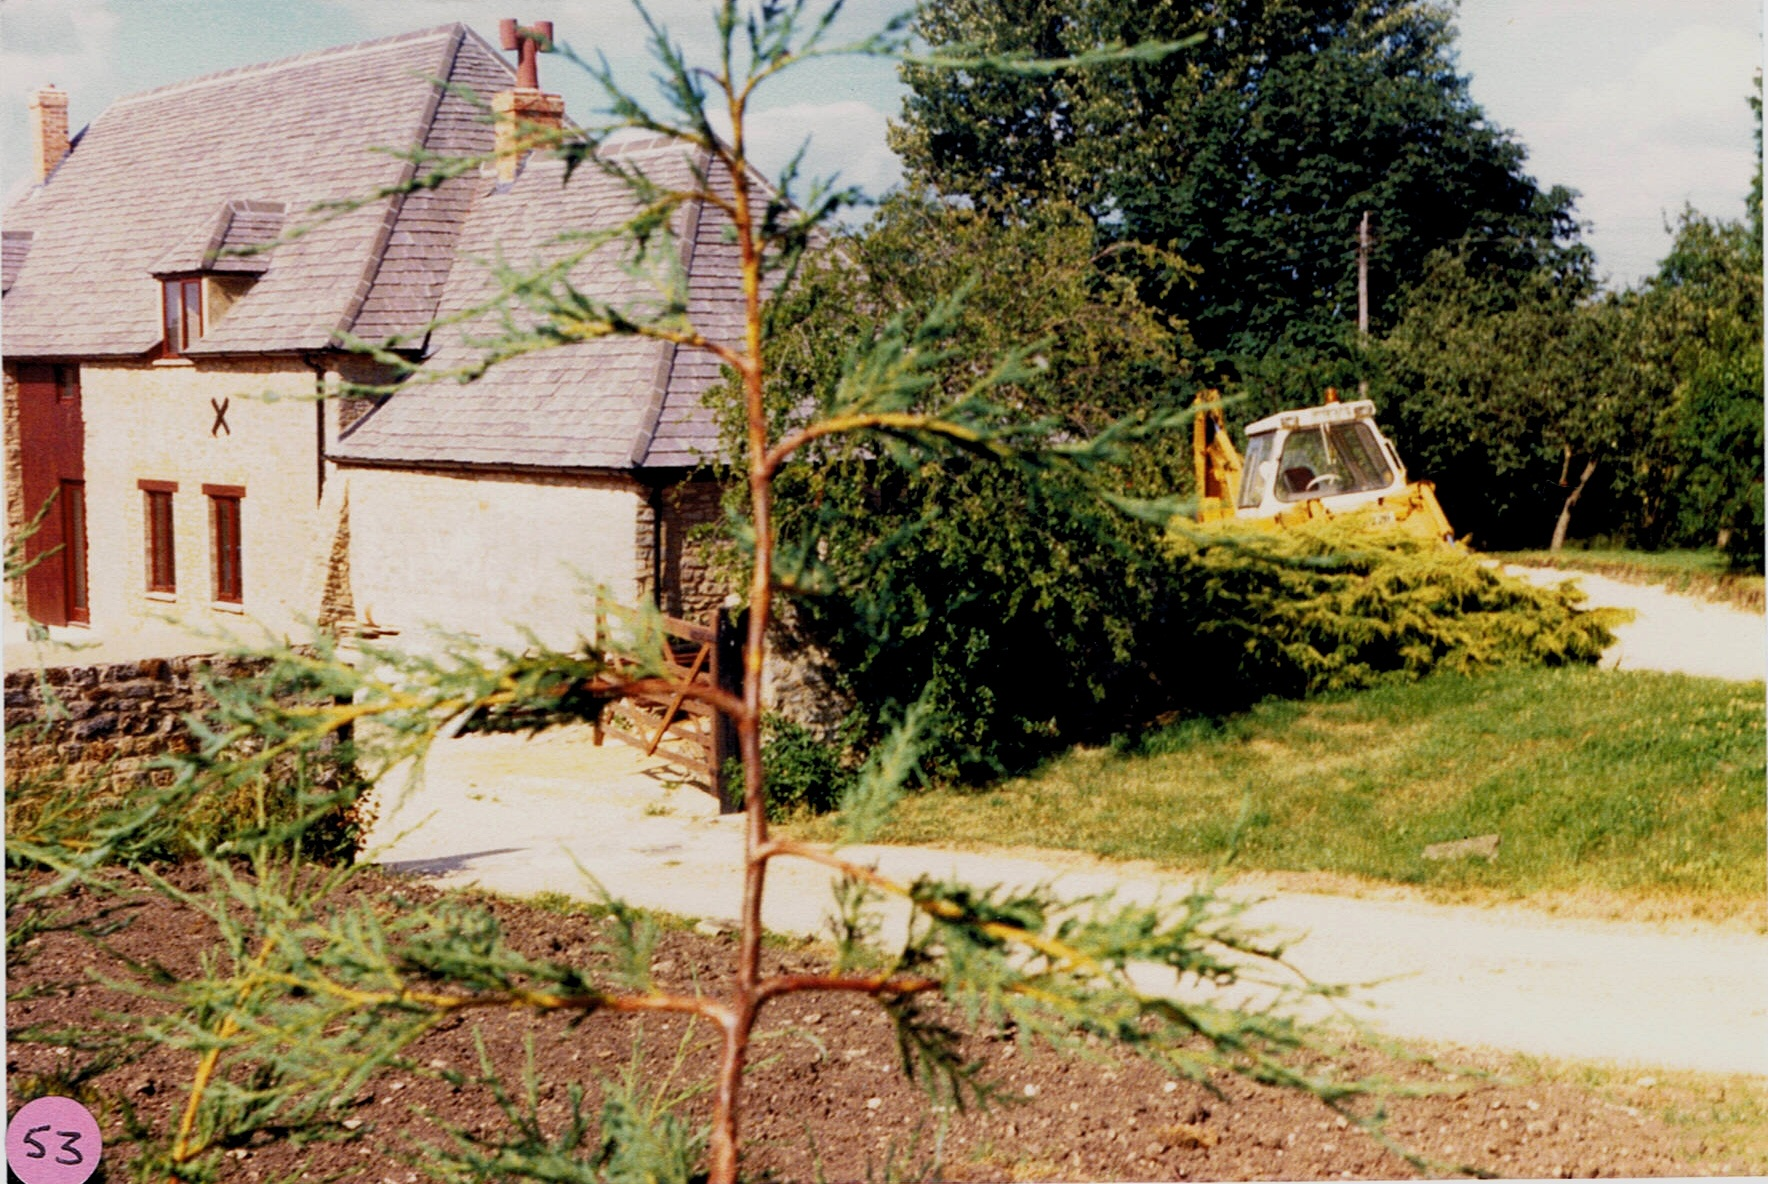 1985/86 Village Farm Barn conversion.